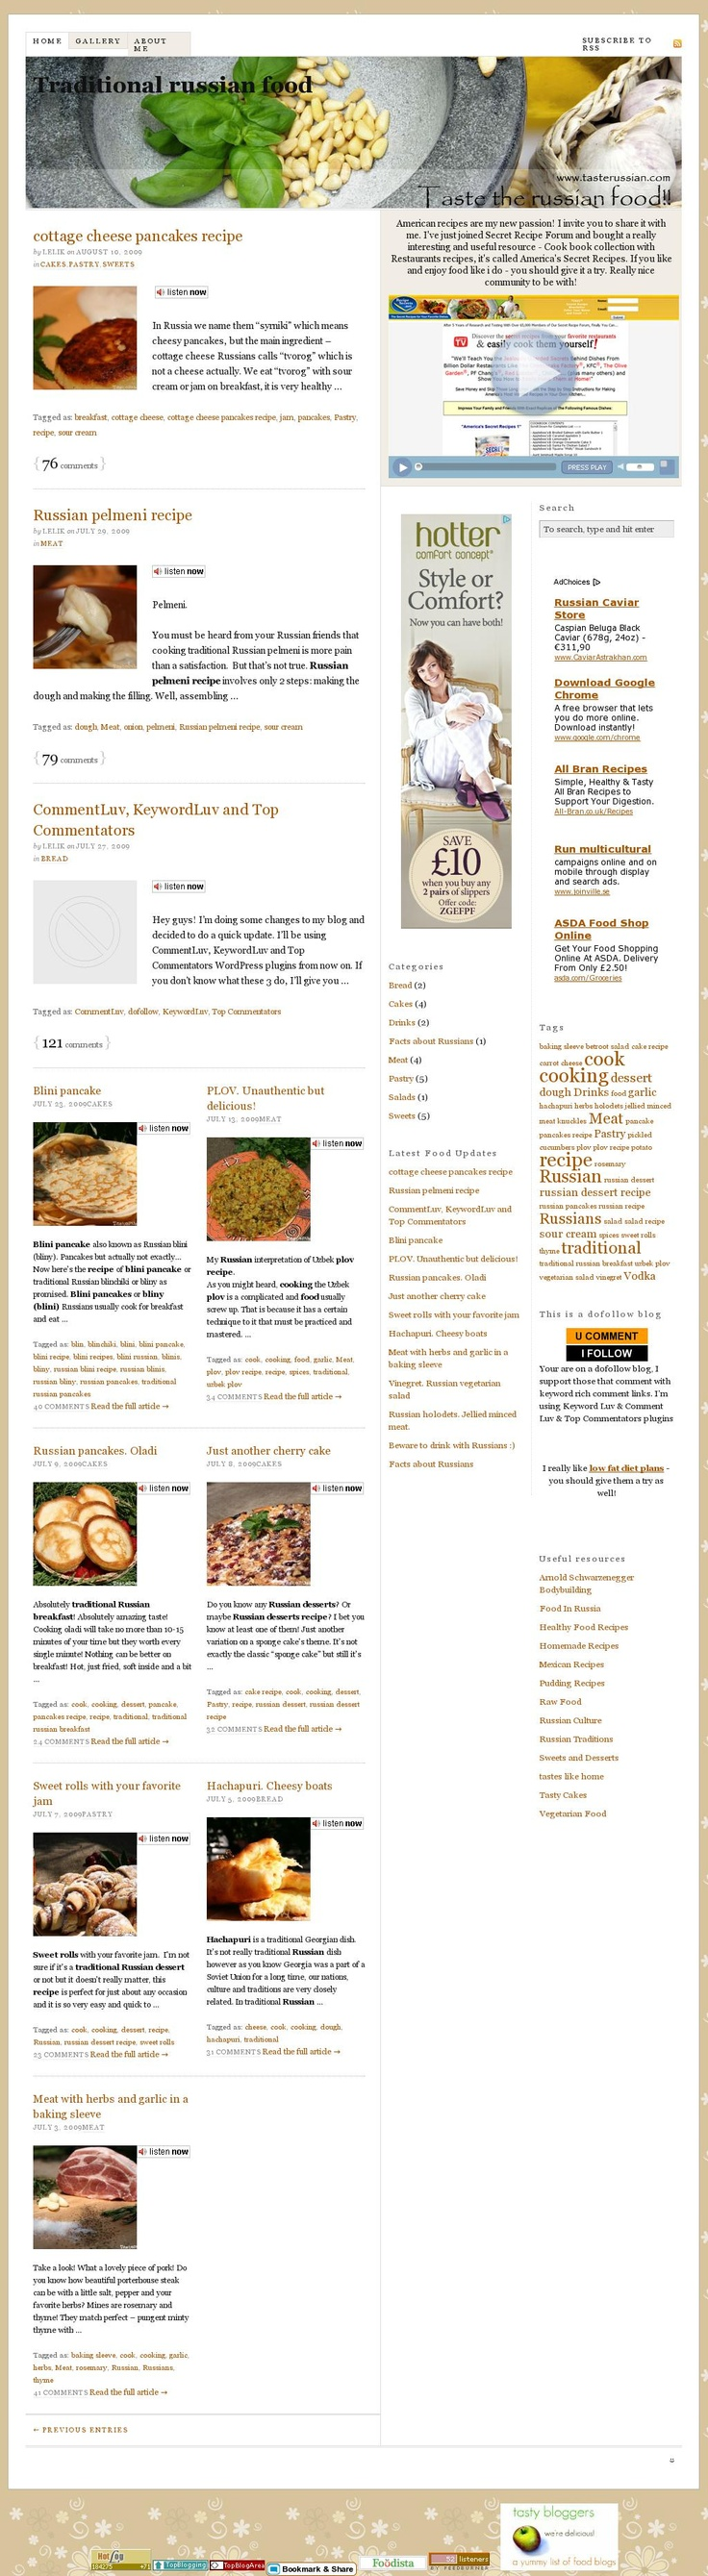 Taste Russian - Traditional Russian Food The website 'http://tasterussian.com/' courtesy of @Pinstamatic (http://pinstamatic.com)